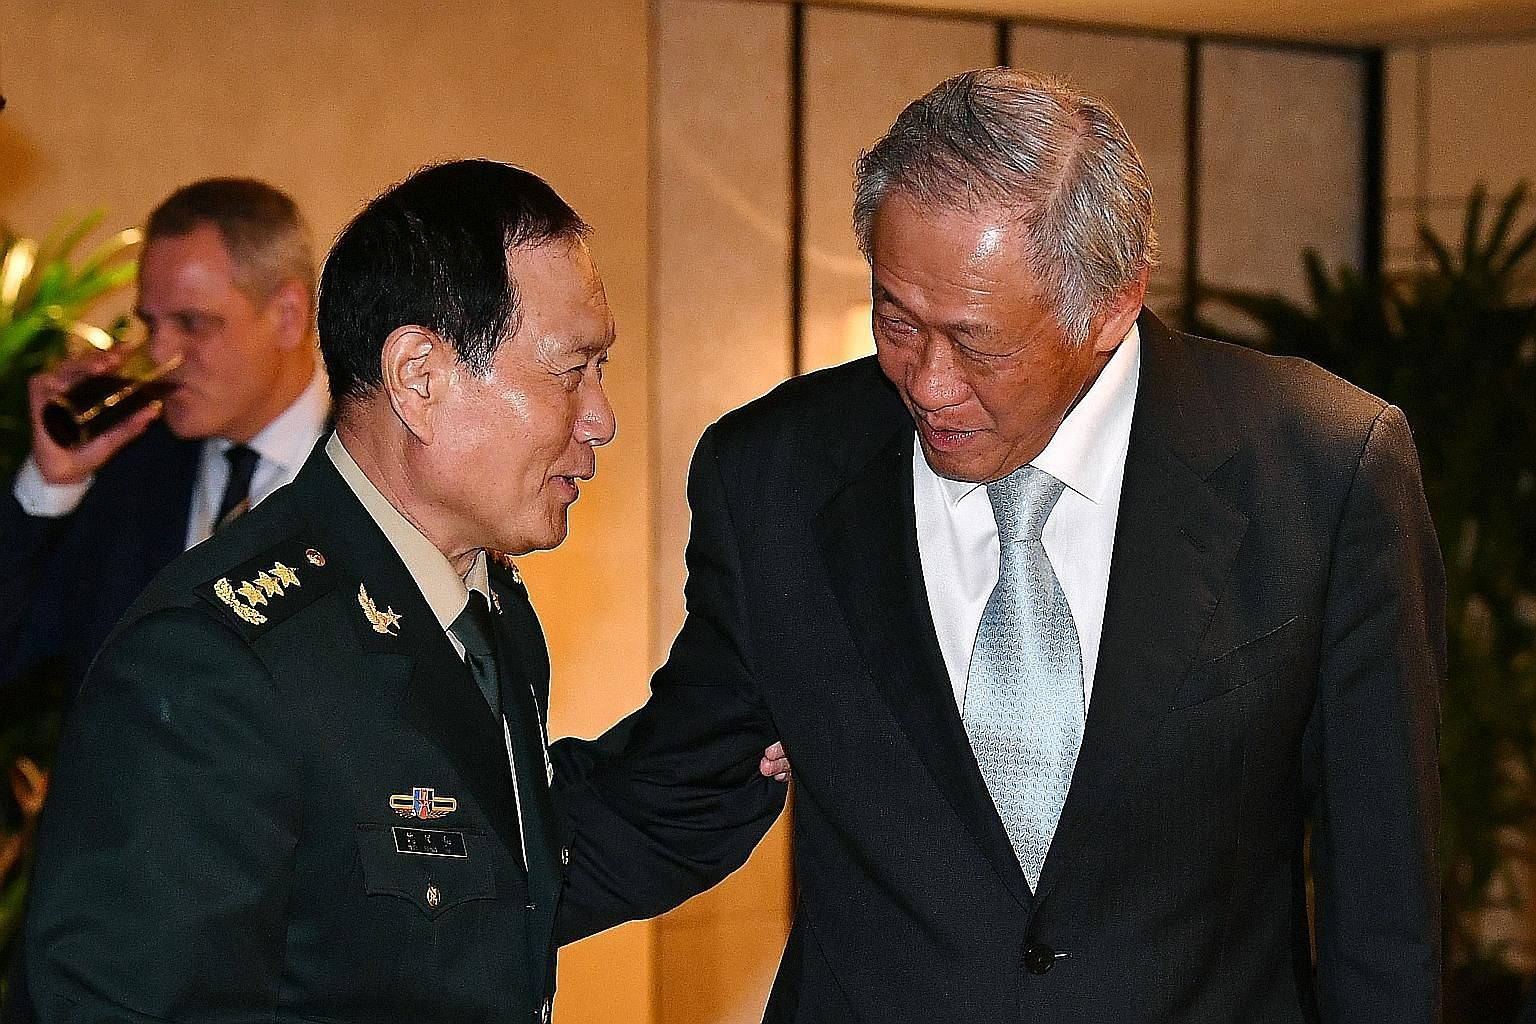 China's Defence Minister Wei Fenghe with Defence Minister Ng Eng Hen during the second ministerial roundtable hosted by Dr Ng at the Shangri-La Dialogue yesterday. ST PHOTO: LIM YAOHUI